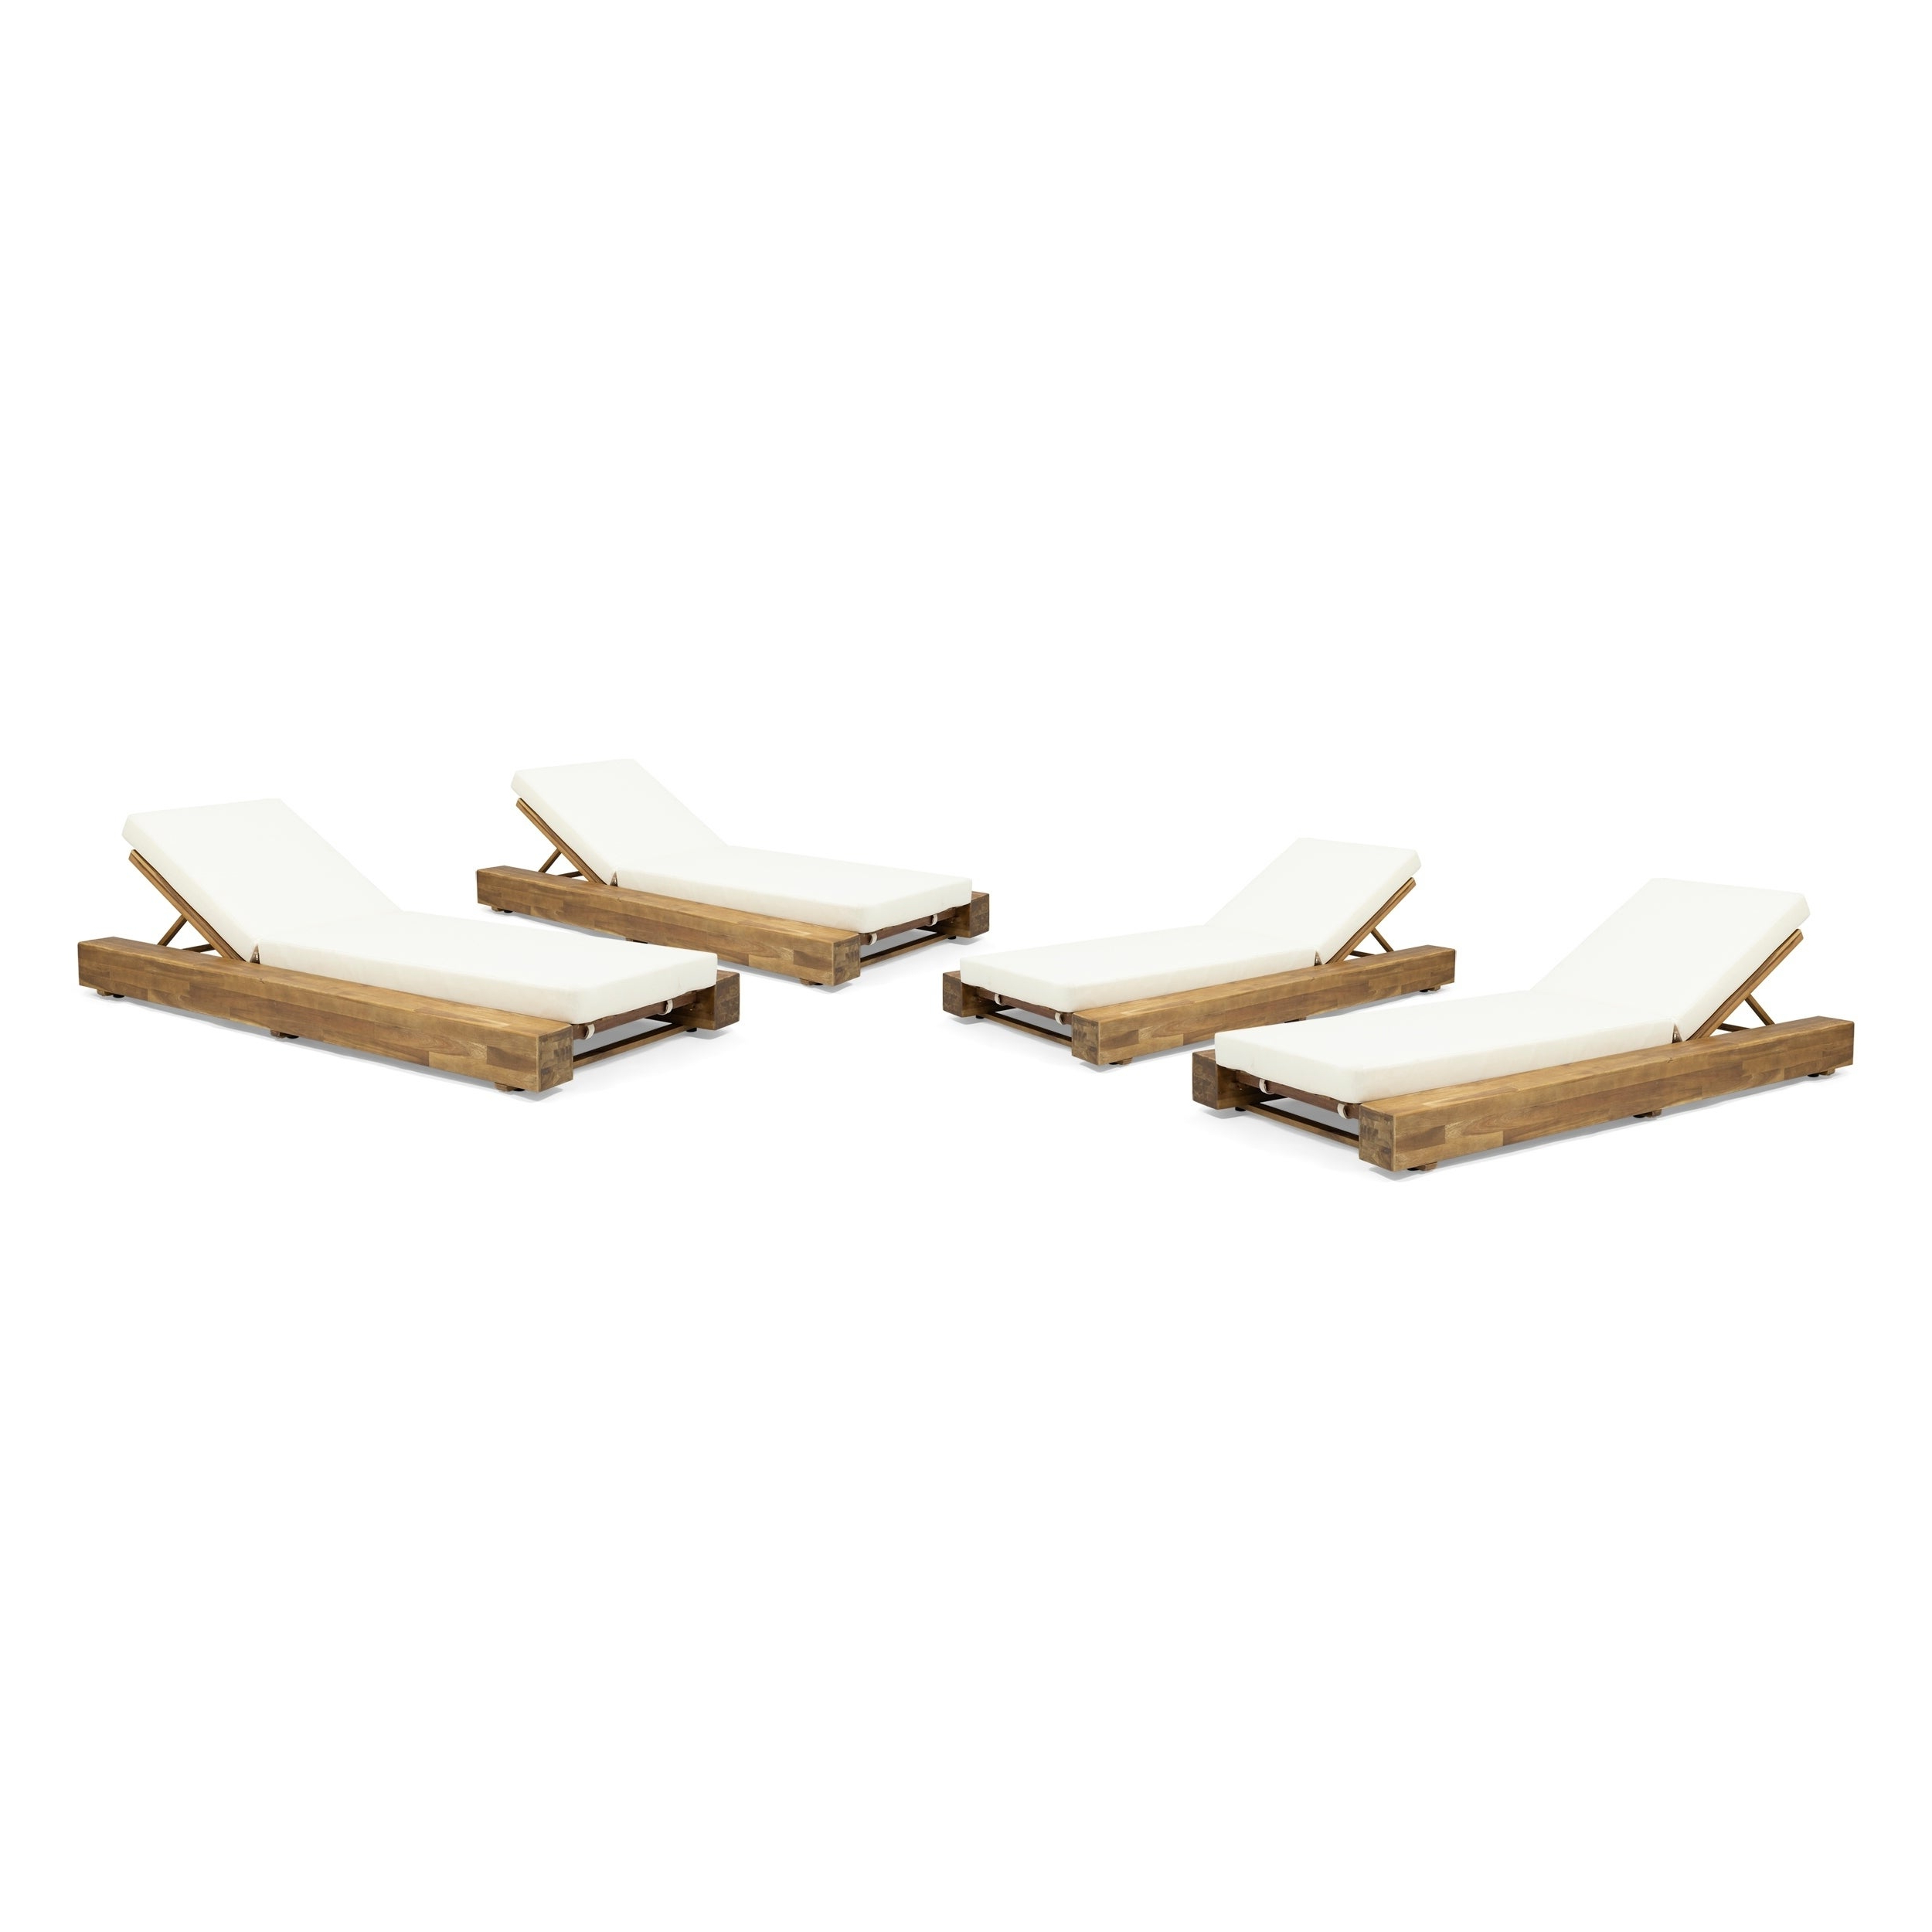 Broadway Outdoor Acacia Wood Chaise Lounge And Cushion Sets (Set Of 4) Christopher Knight Home Regarding 2020 Outdoor Acacia Wood Chaise Lounges And Cushion Sets (View 3 of 25)